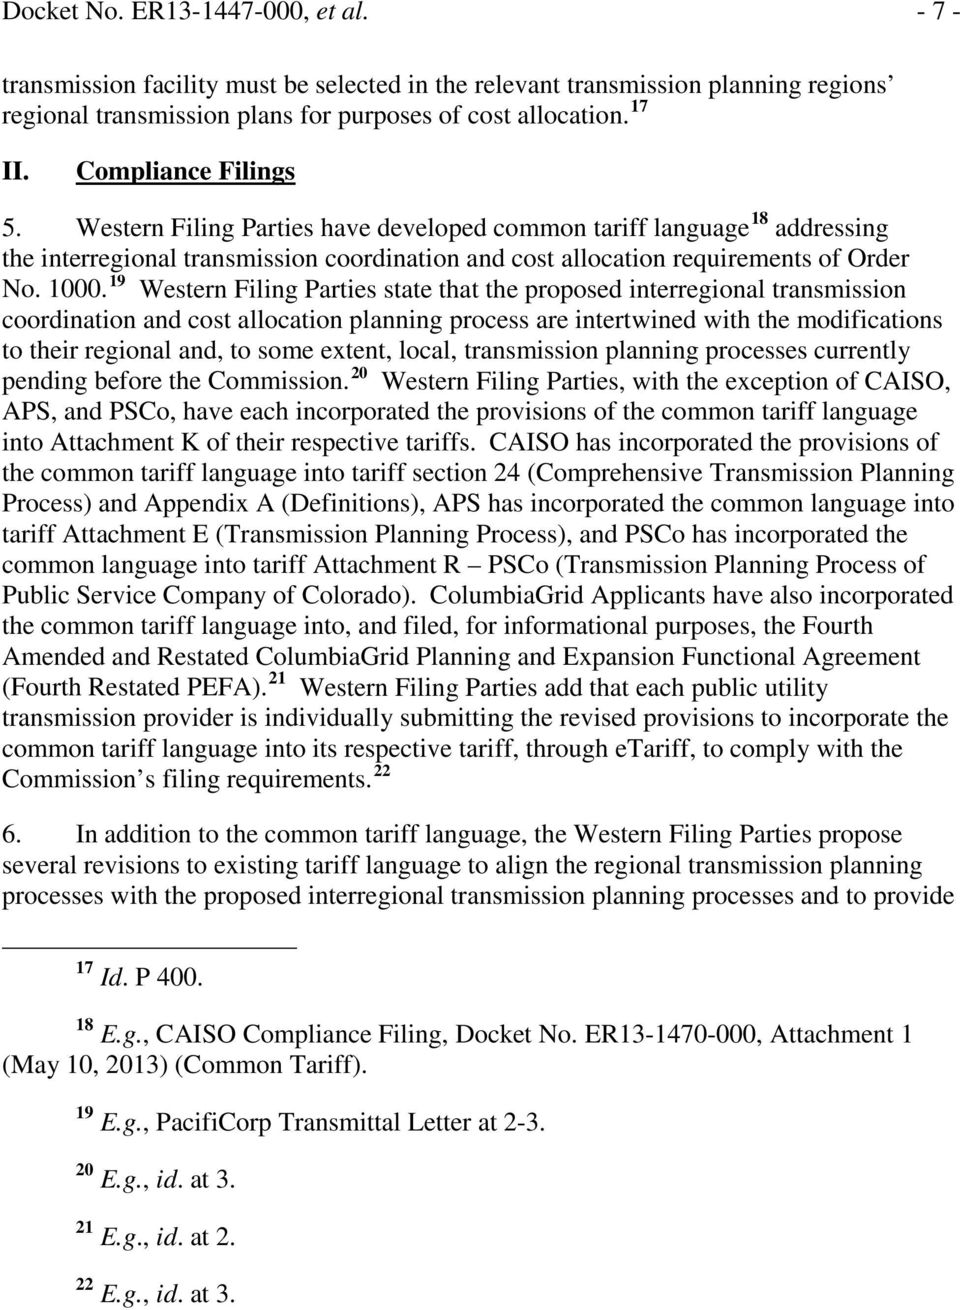 19 Western Filing Parties state that the proposed interregional transmission coordination and cost allocation planning process are intertwined with the modifications to their regional and, to some